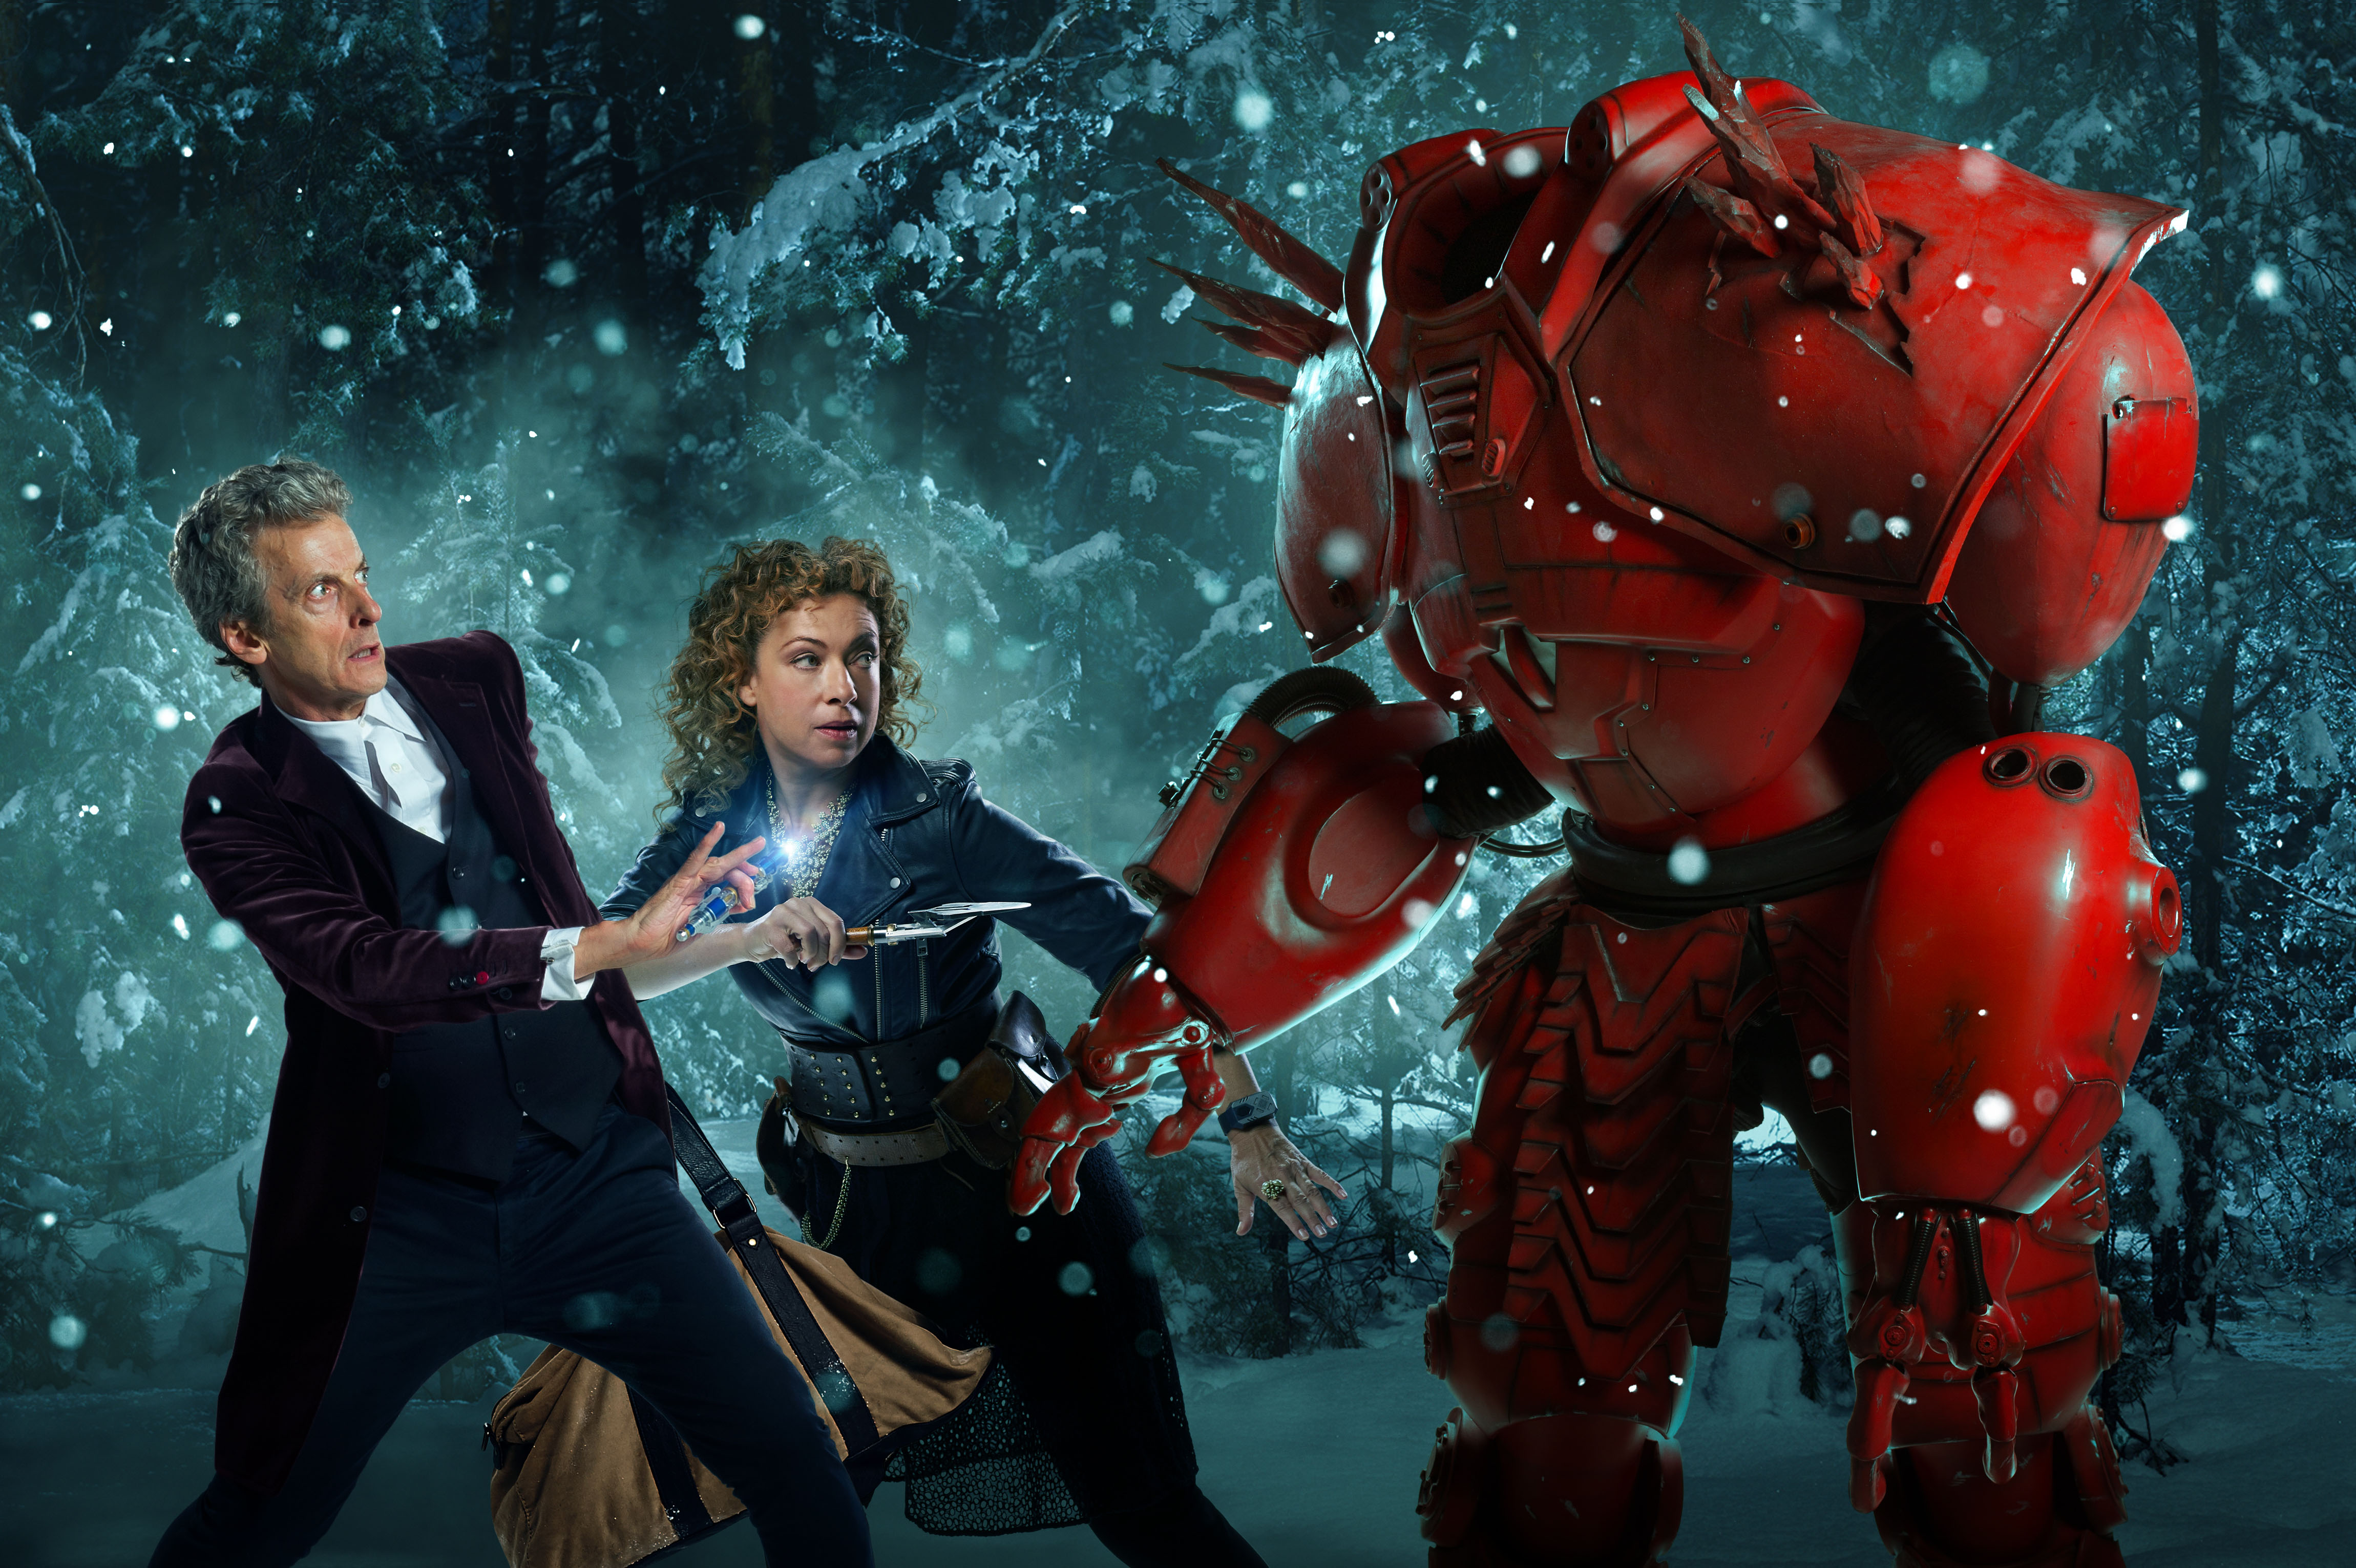 Doctor Who (PETER CAPALDI), River Song (ALEX KINGSTON), Hydroflax in the Christmas special The Husbands of River Song